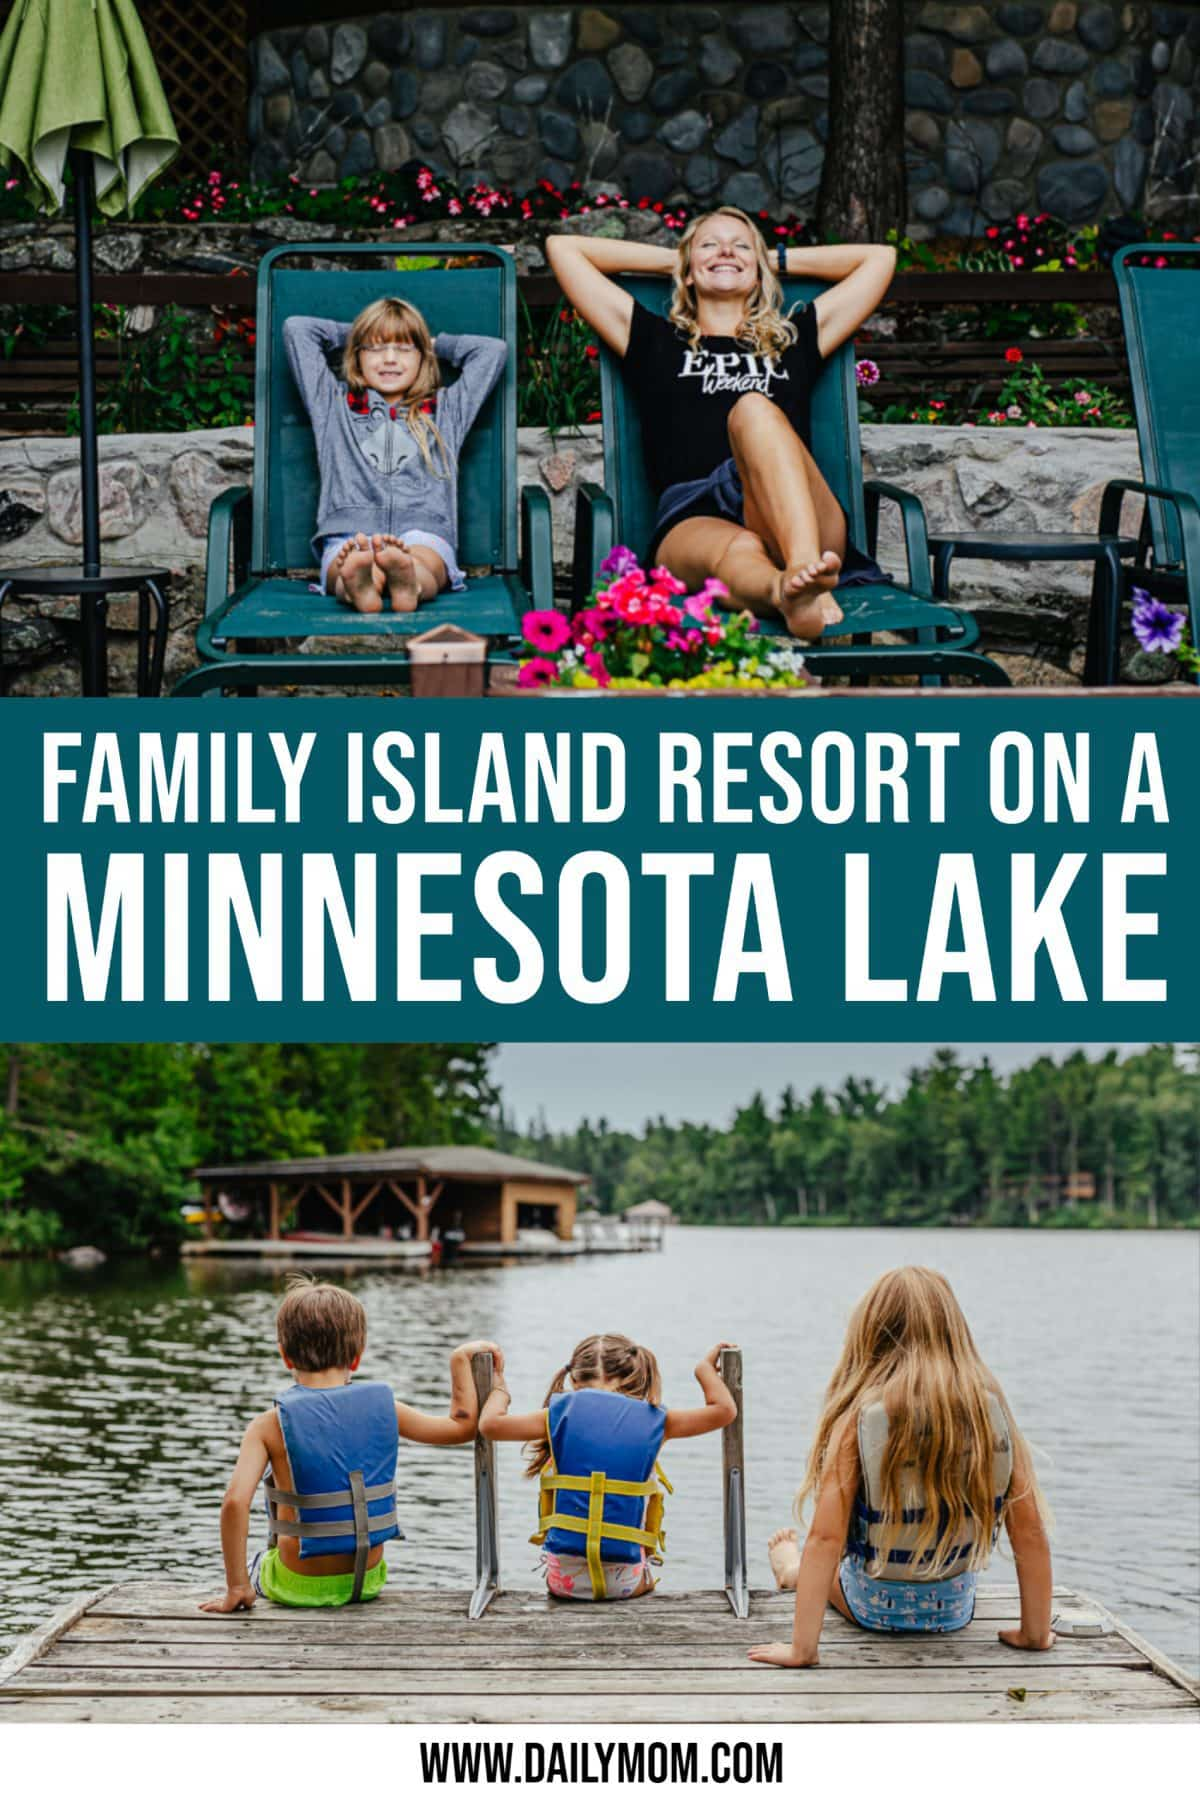 Ludlow's Island Resort In Minnesota {in Photos}